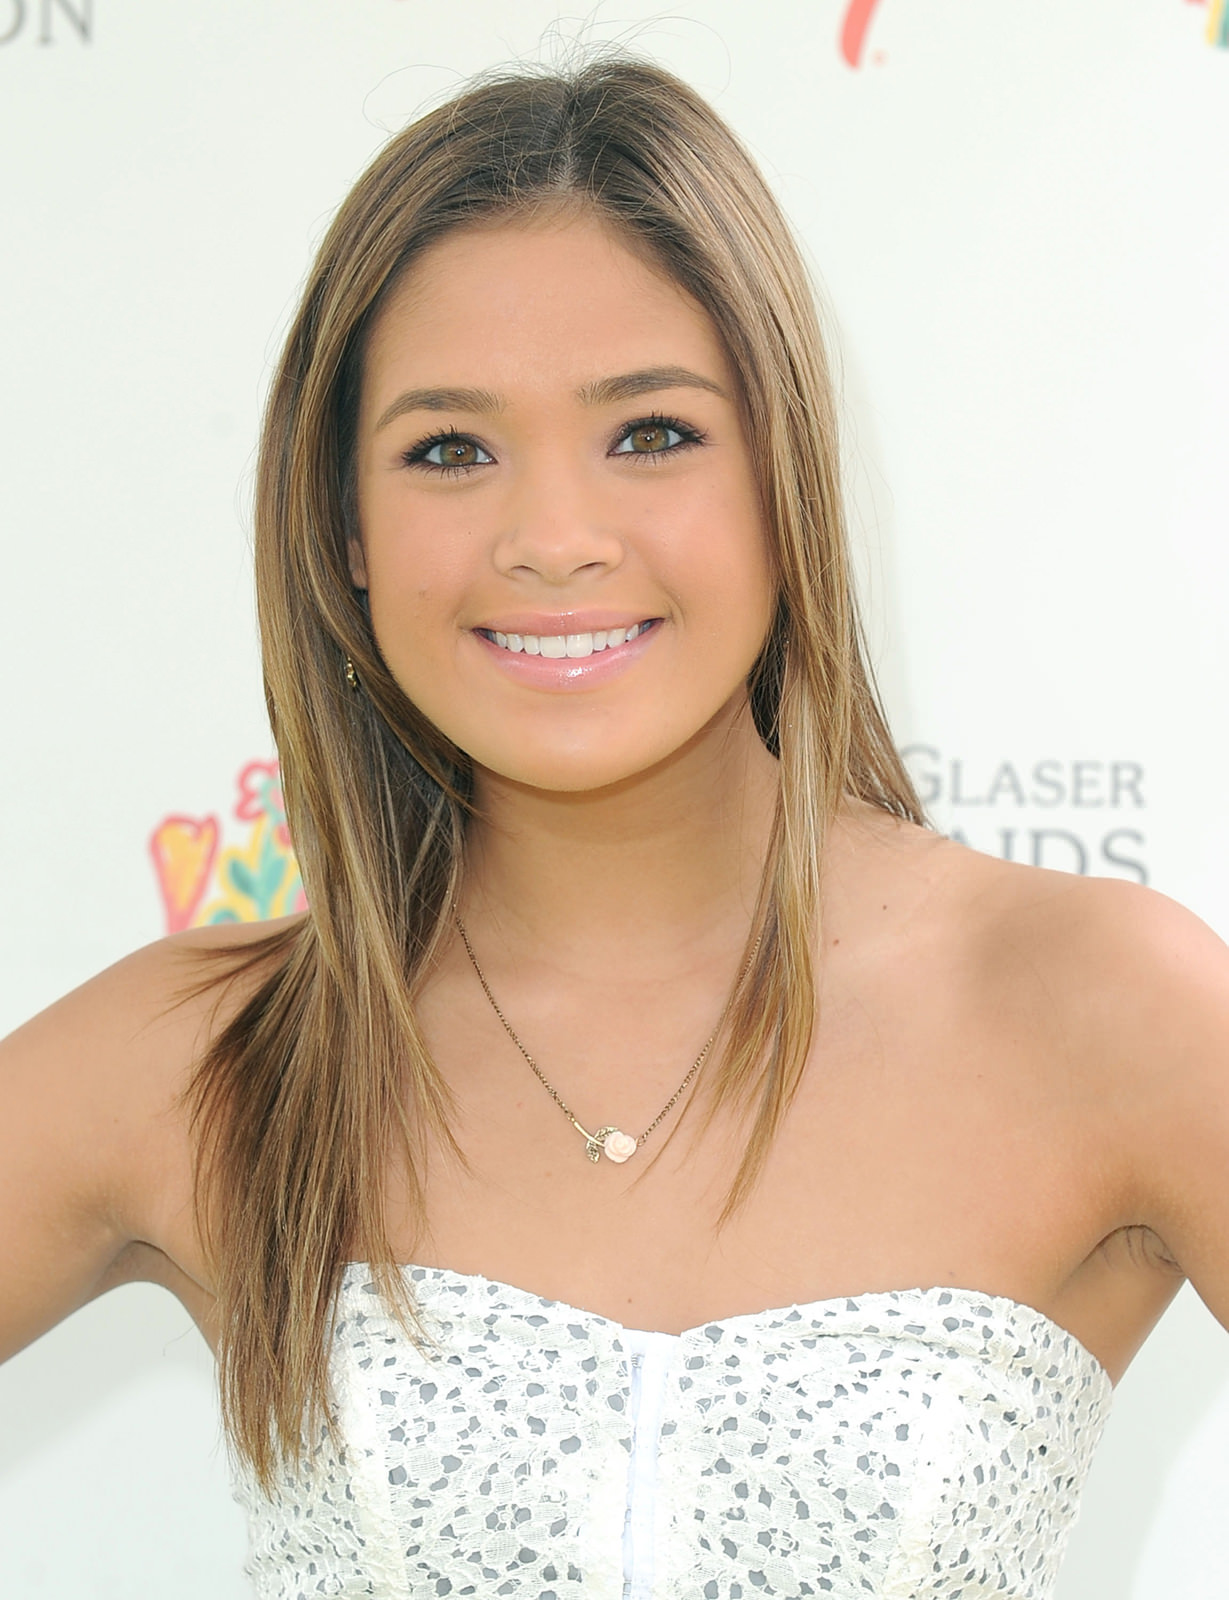 Nicole Anderson Photo Gallery